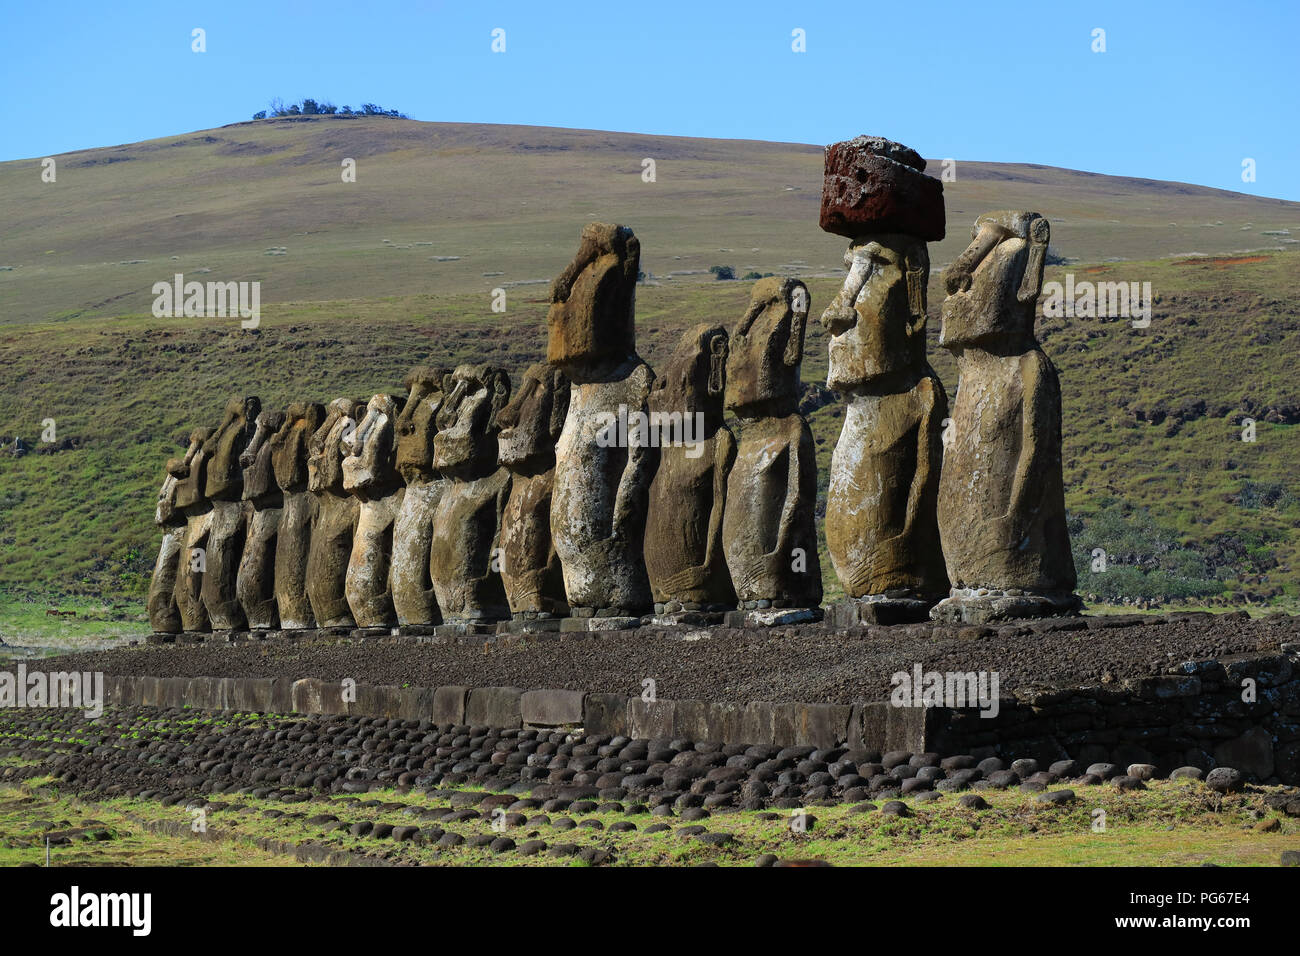 The giant Moai statues of Ahu Tongariki with Poike volcano in background, Archaeological site in Easter Island, Chile - Stock Image